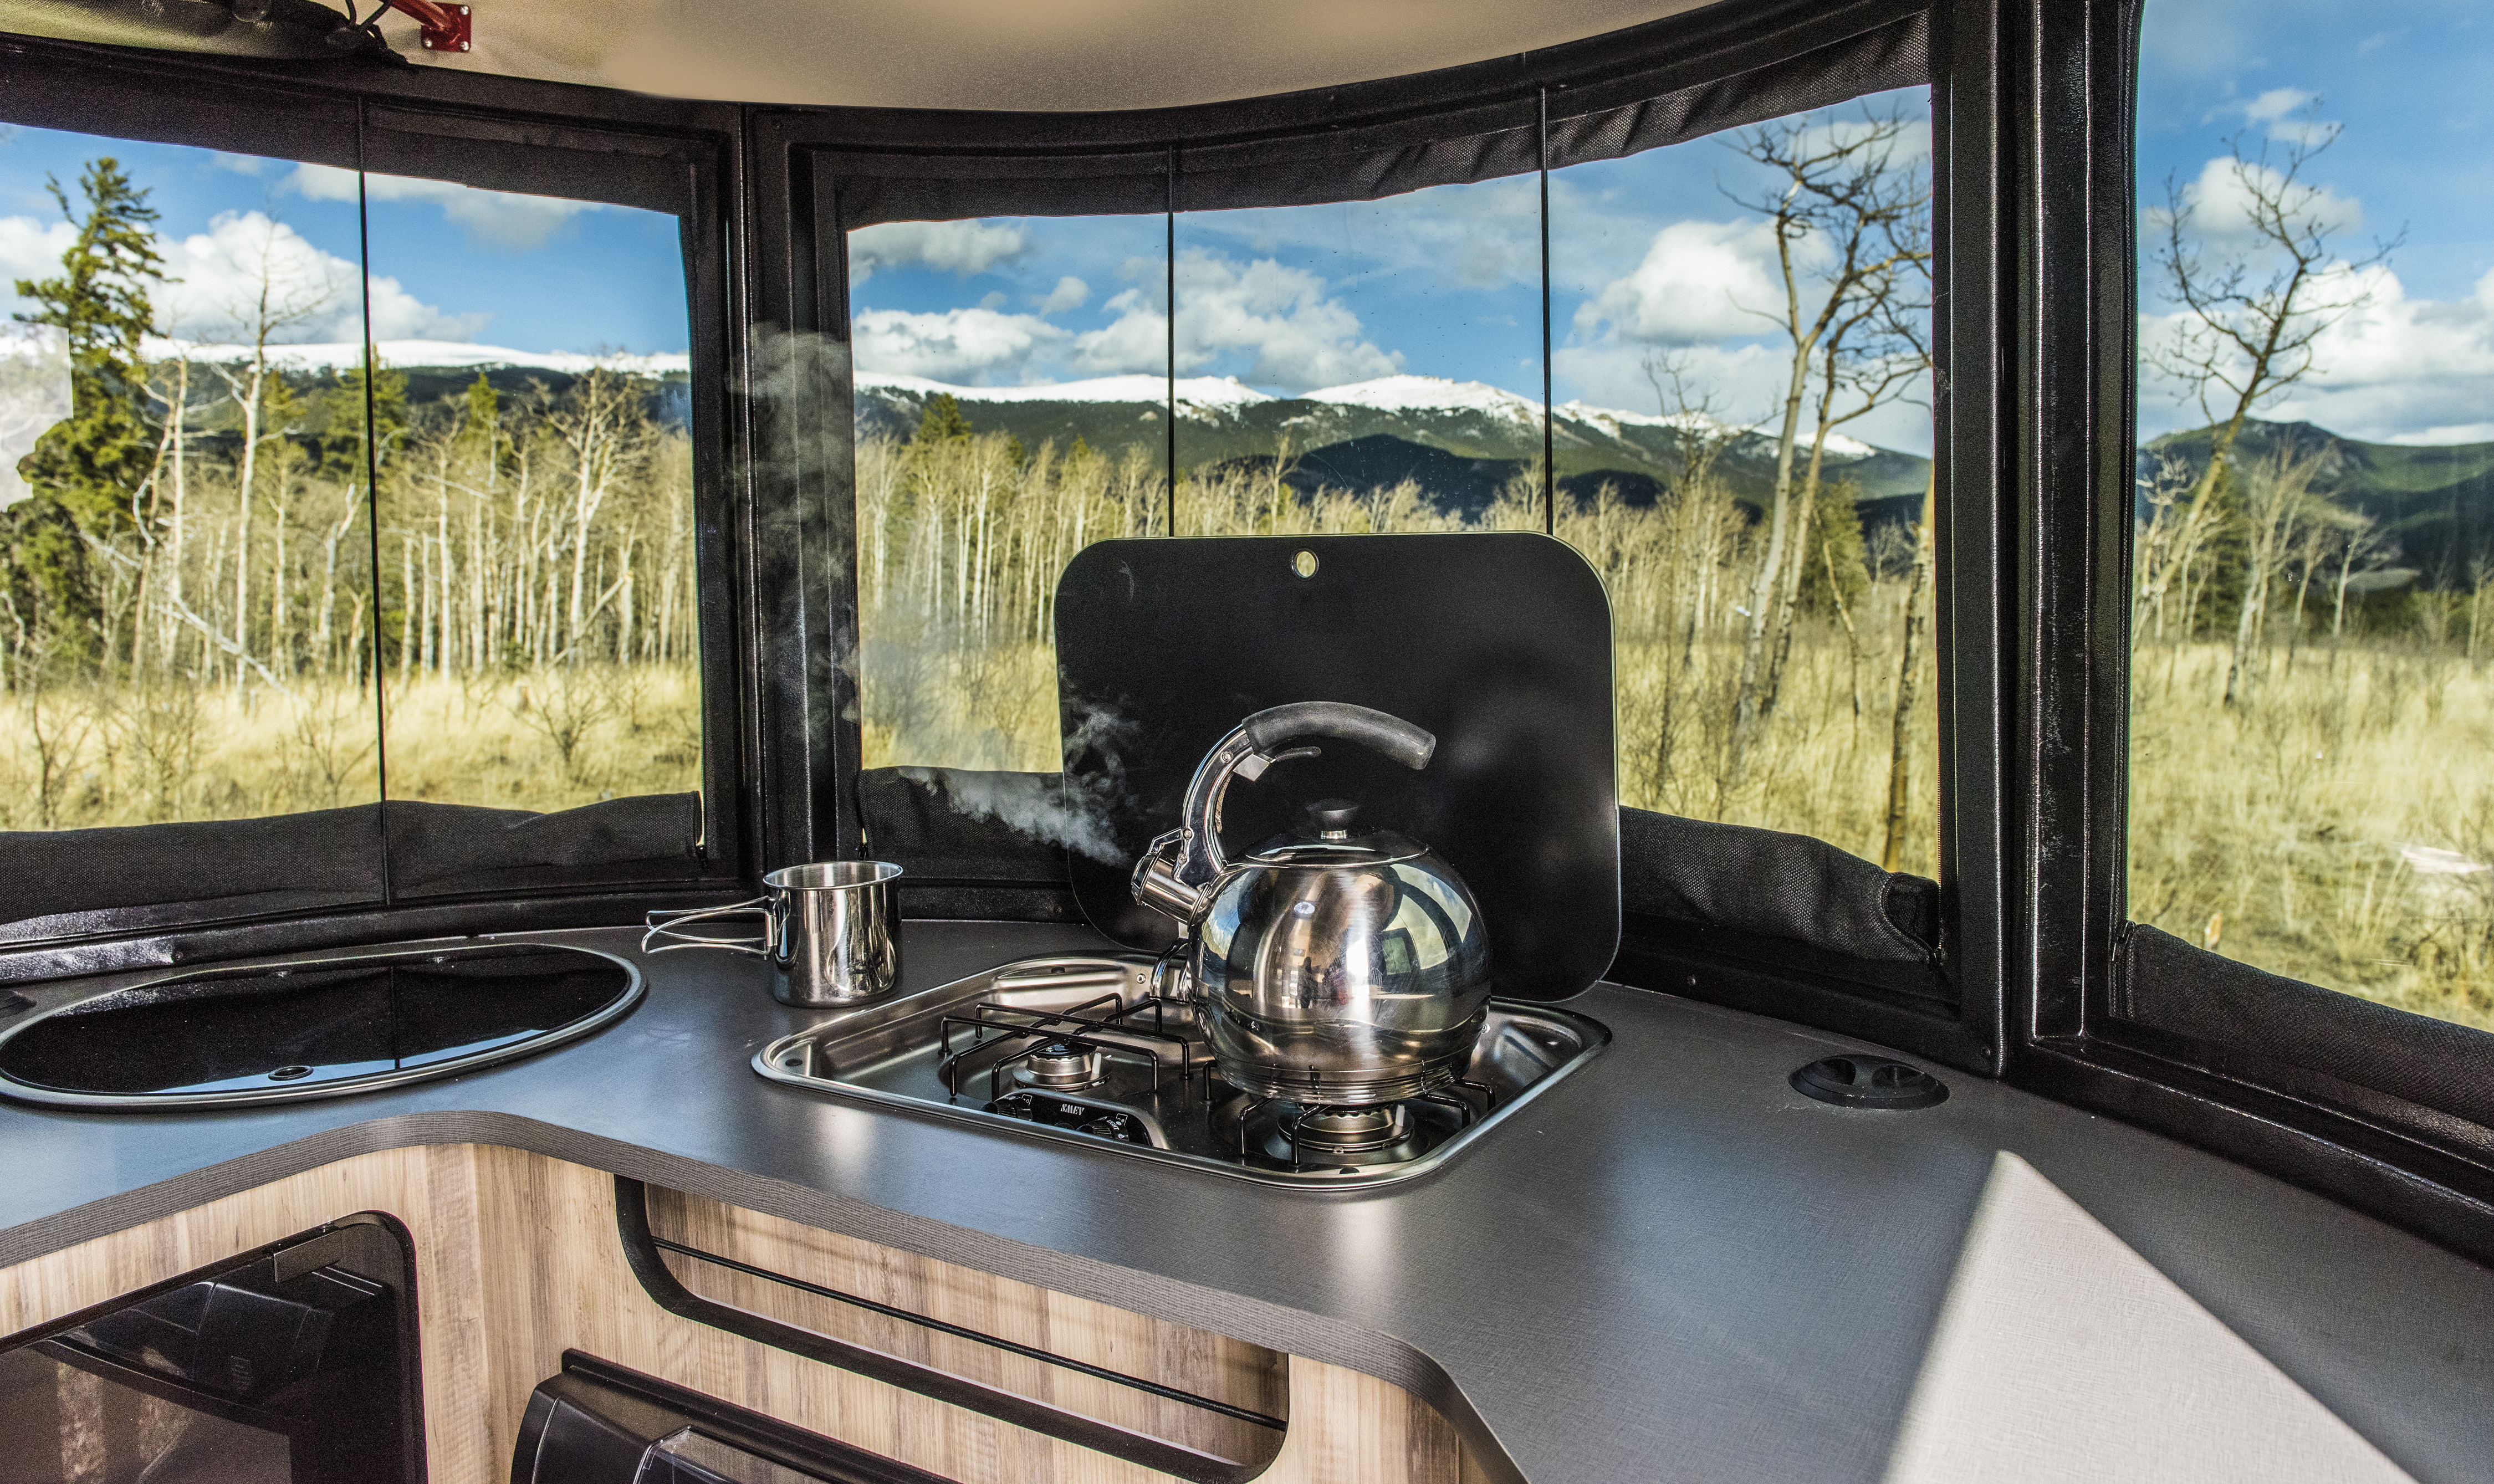 Airstream Basecamp Is The Smaller Lighter Cuter Version